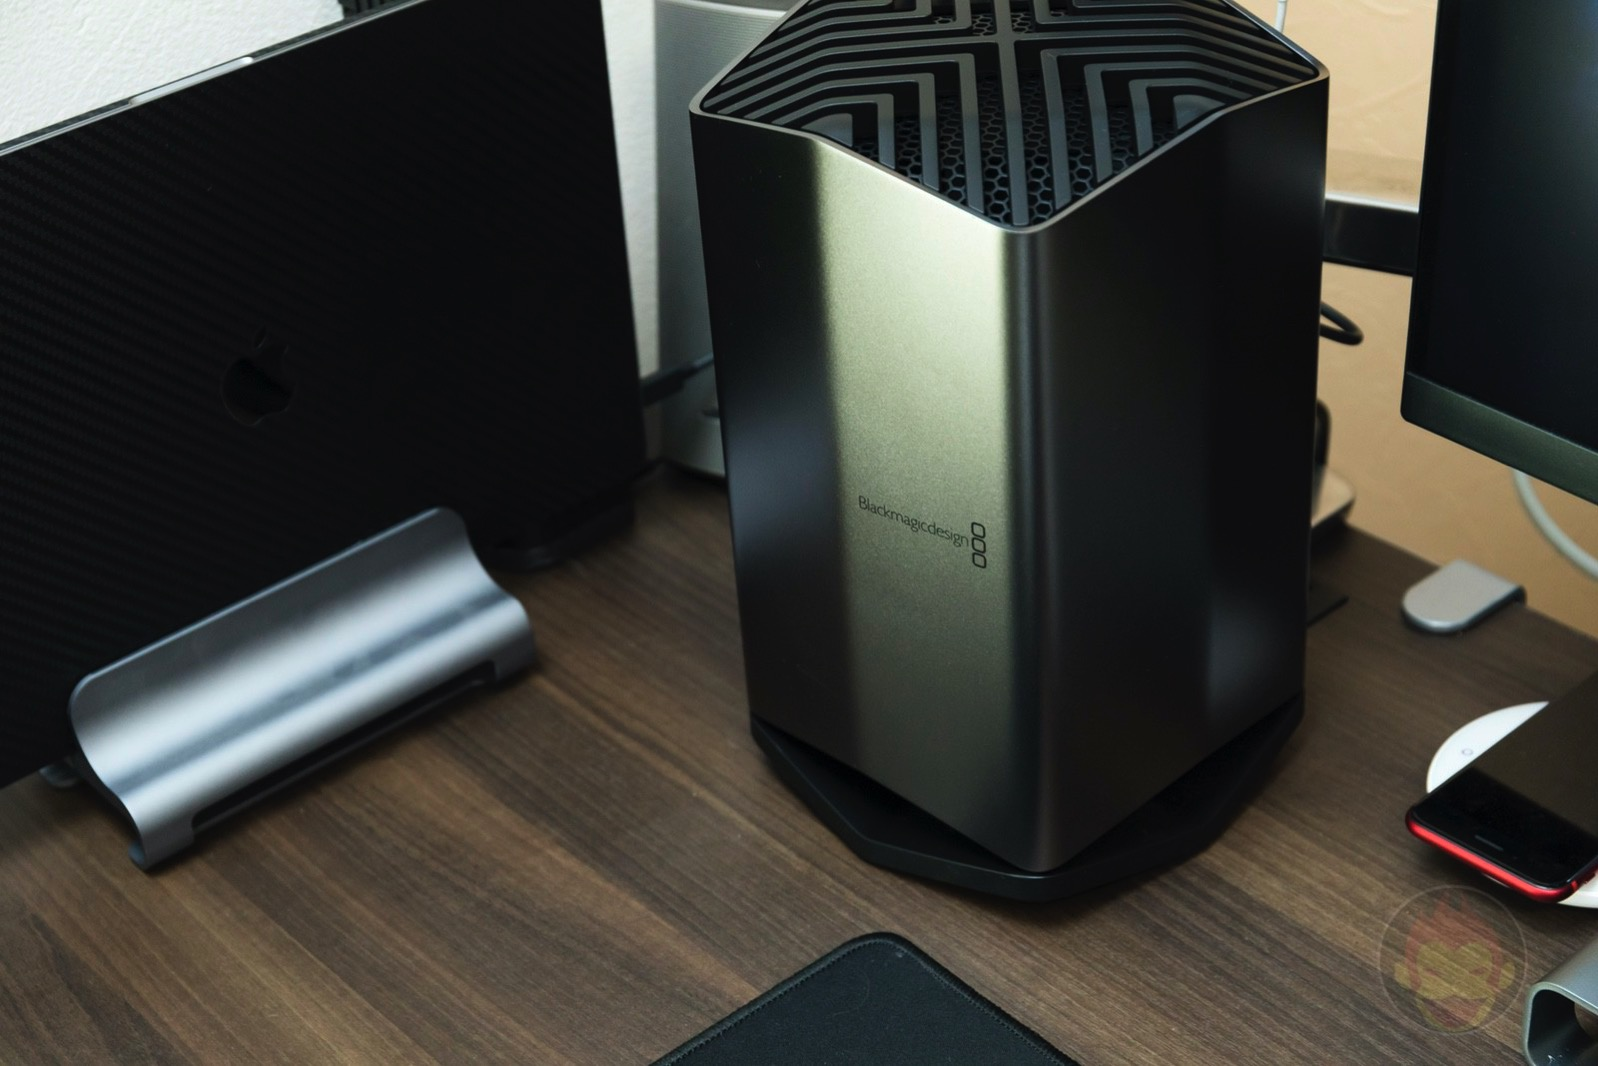 Blackmagic eGPU Review 08